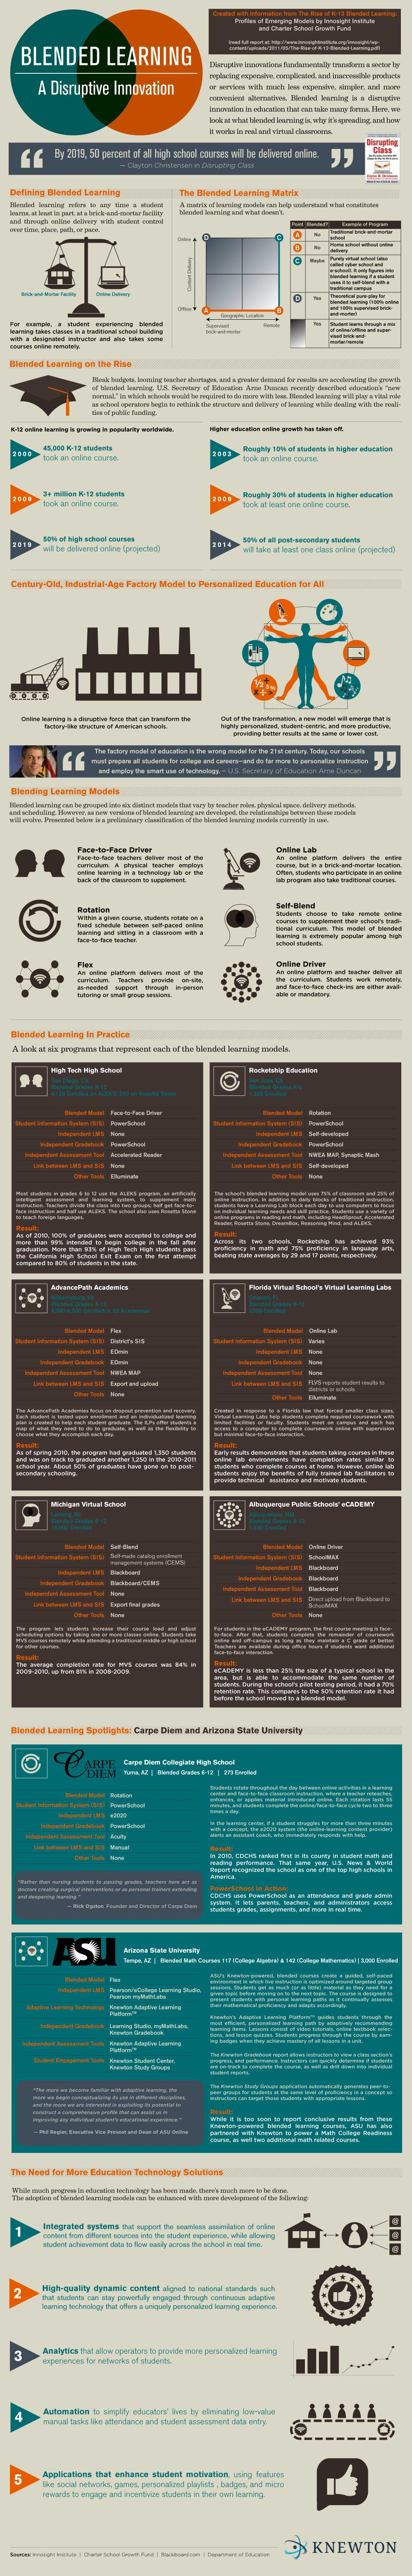 blended-learning-infographic